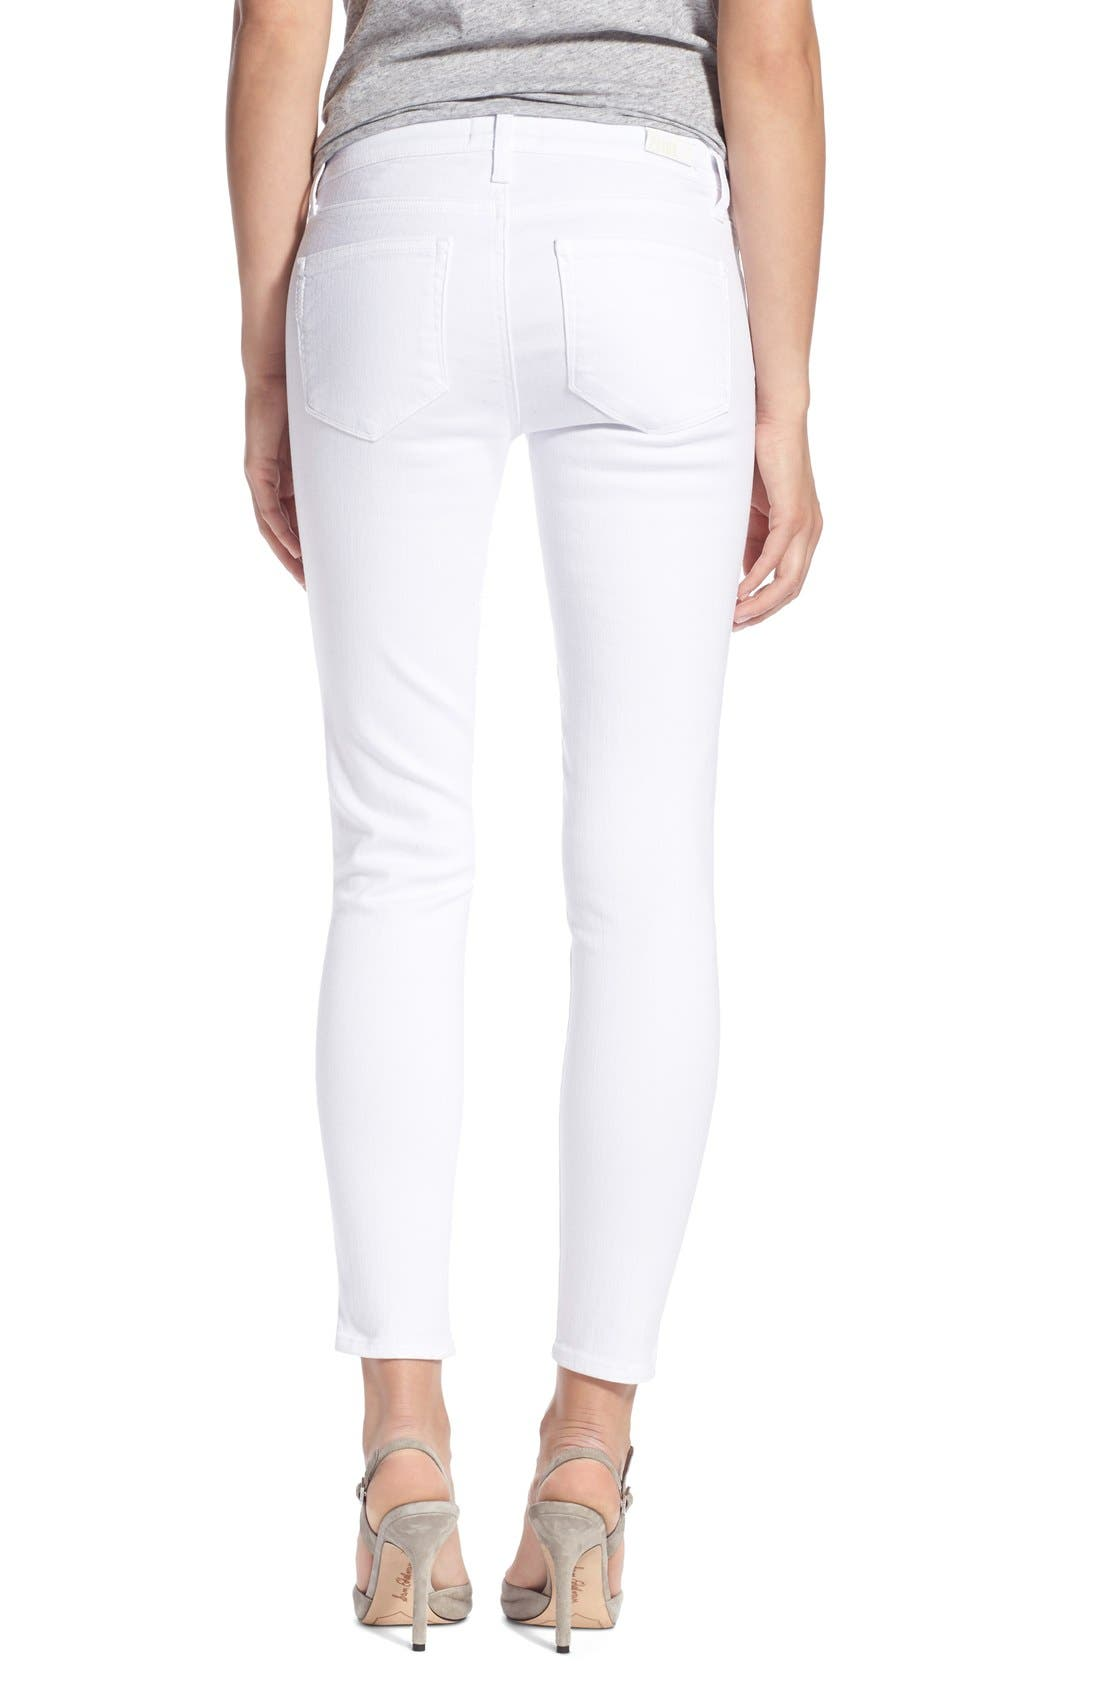 PAIGE, 'Verdugo' Ankle Skinny Jeans, Alternate thumbnail 6, color, ULTRA WHITE